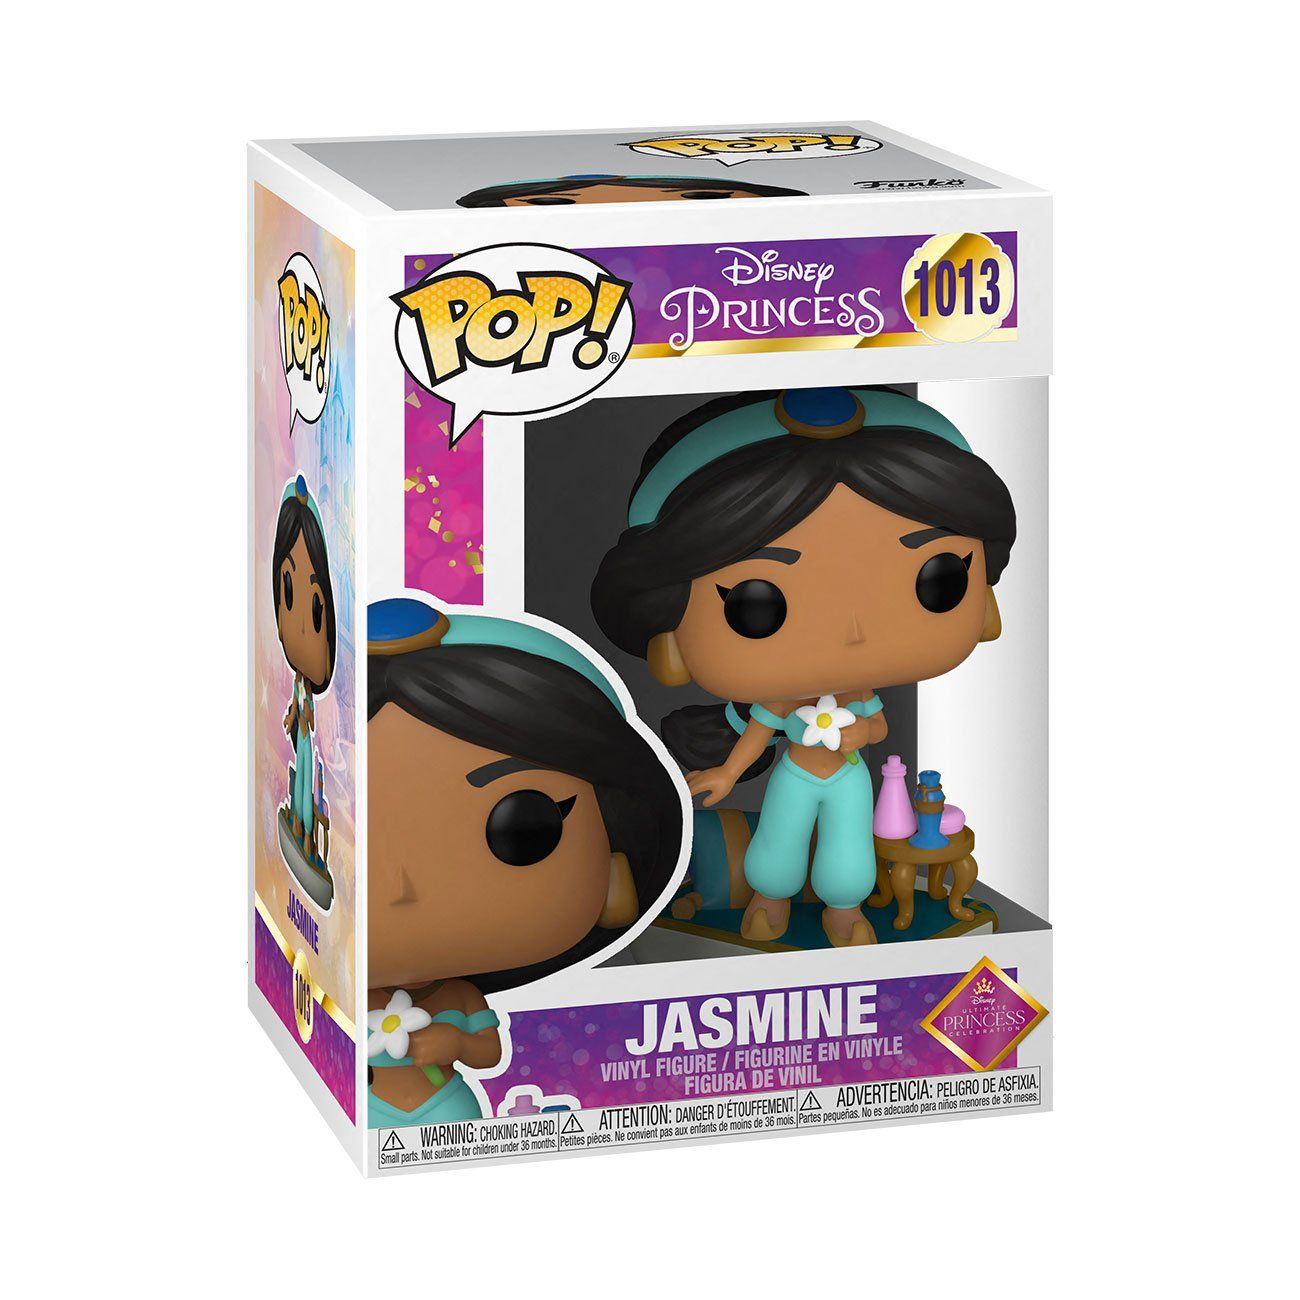 Jasmine #1013 Ultimate Princess Funko POP! Disney [PRE-ORDER EXPECTED SPRING 2021*] POP! Funko